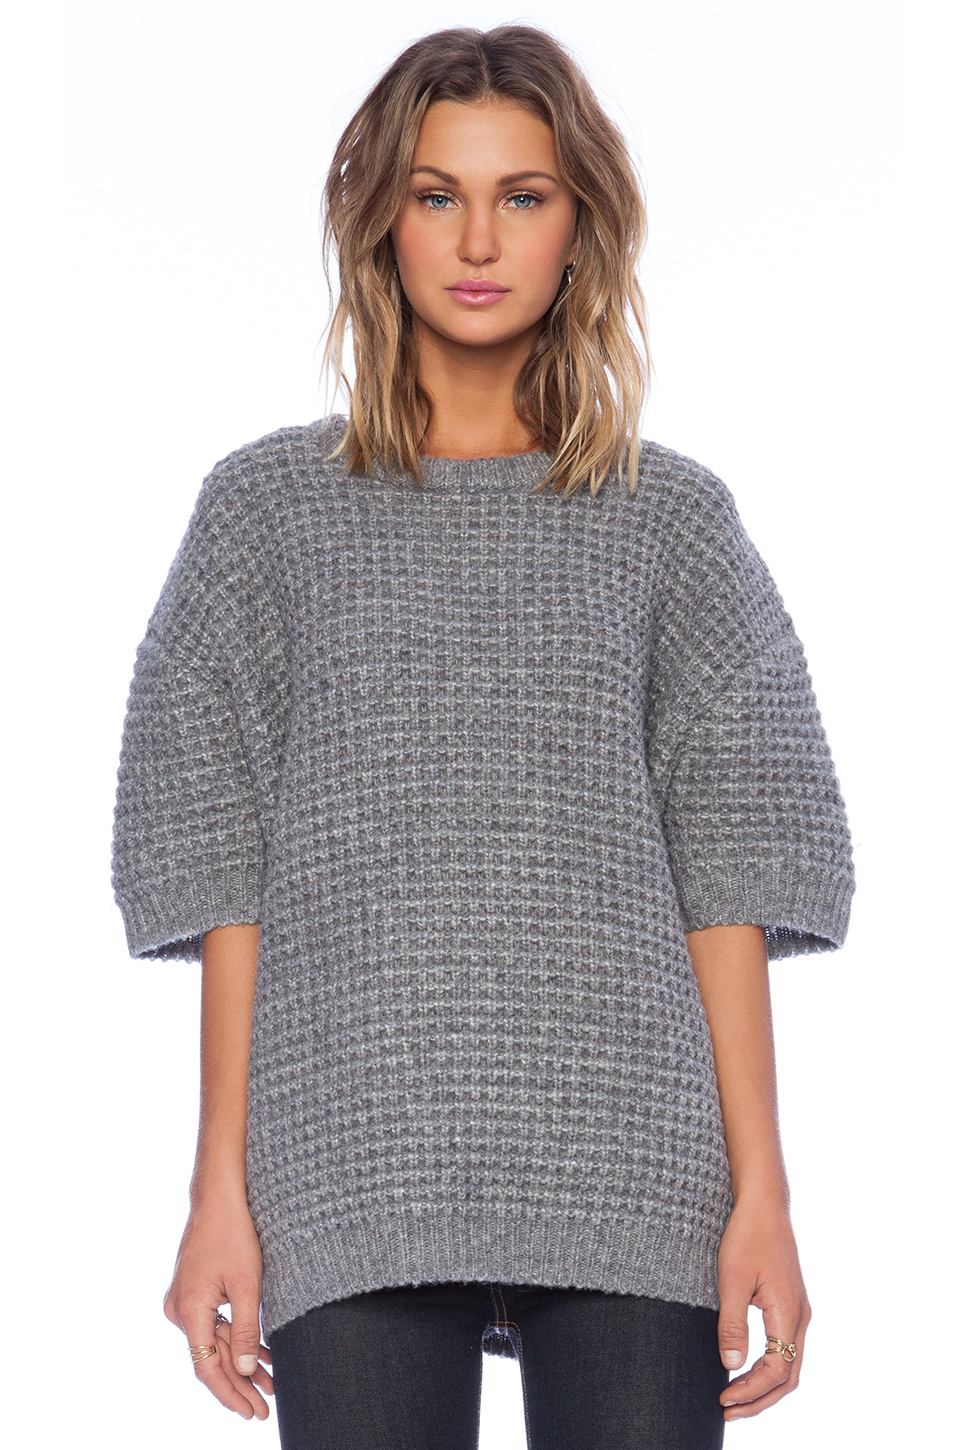 Marc by marc jacobs Walley Short Sleeve Sweater in Gray | Lyst